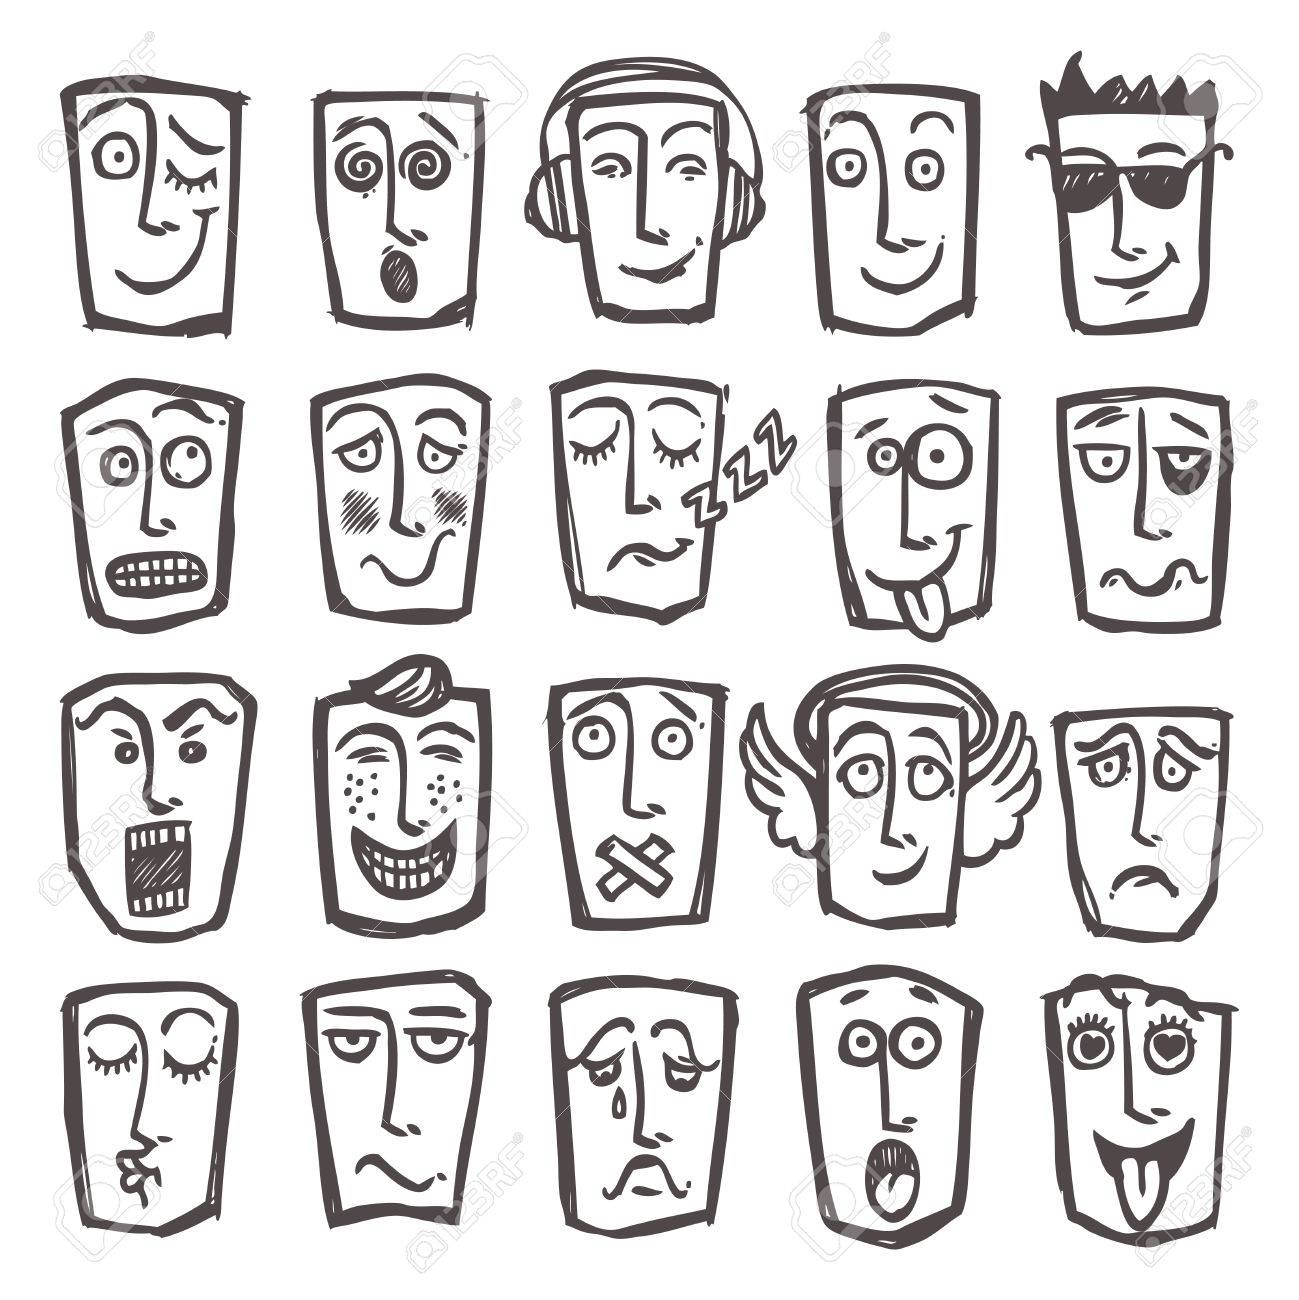 Sketch emoticons man head face expressions icons set isolated vector illustration stock vector 31011226